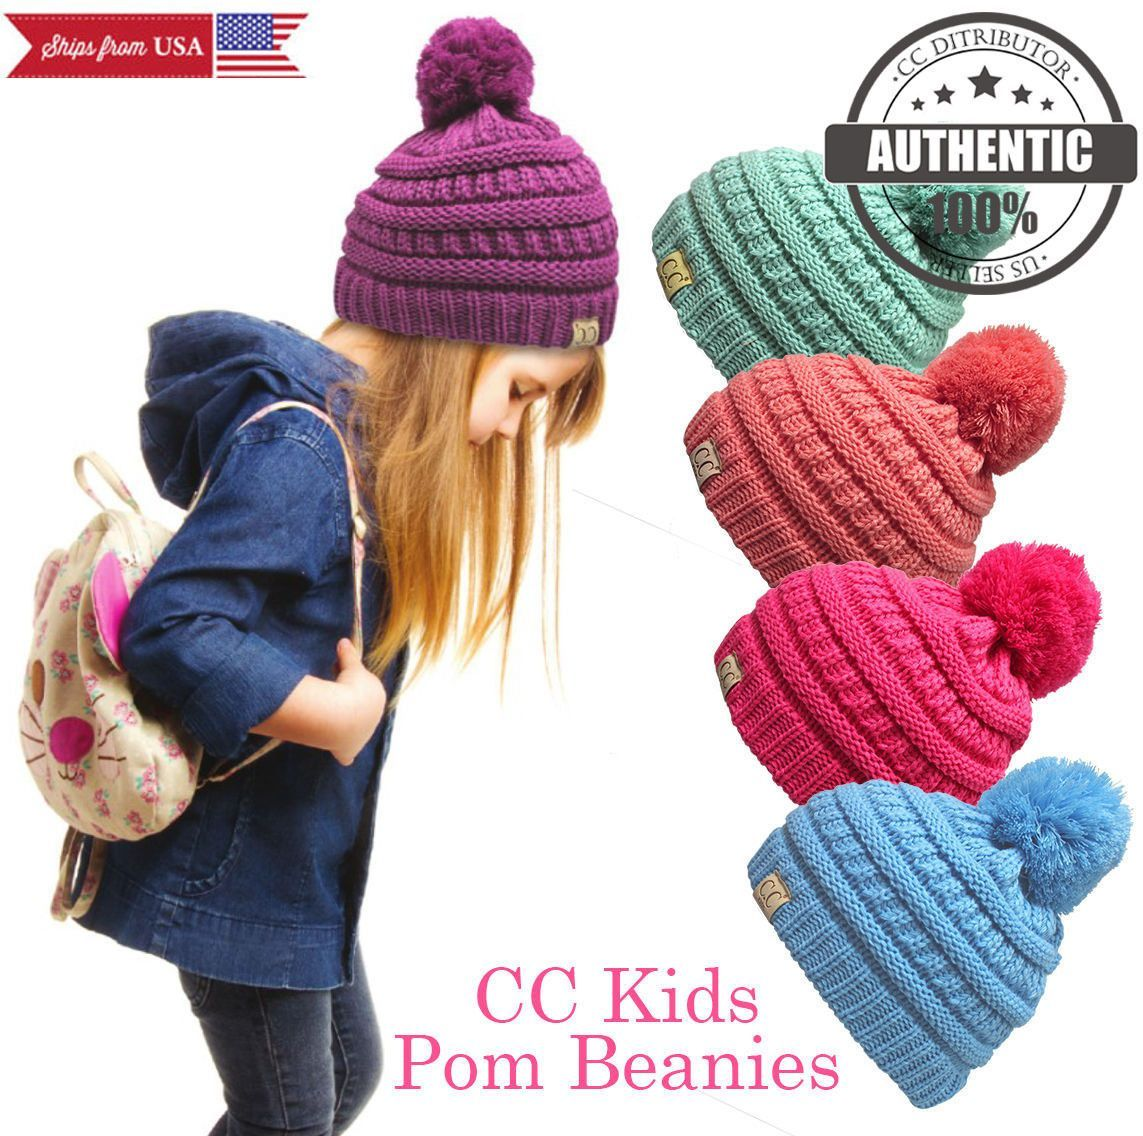 e72bc638012416 Clothing, Shoes & Accessories Kids Pom Pom CC Beanie Trendy Simple Winter  Solid Cable Knit Hat Women's Accessories